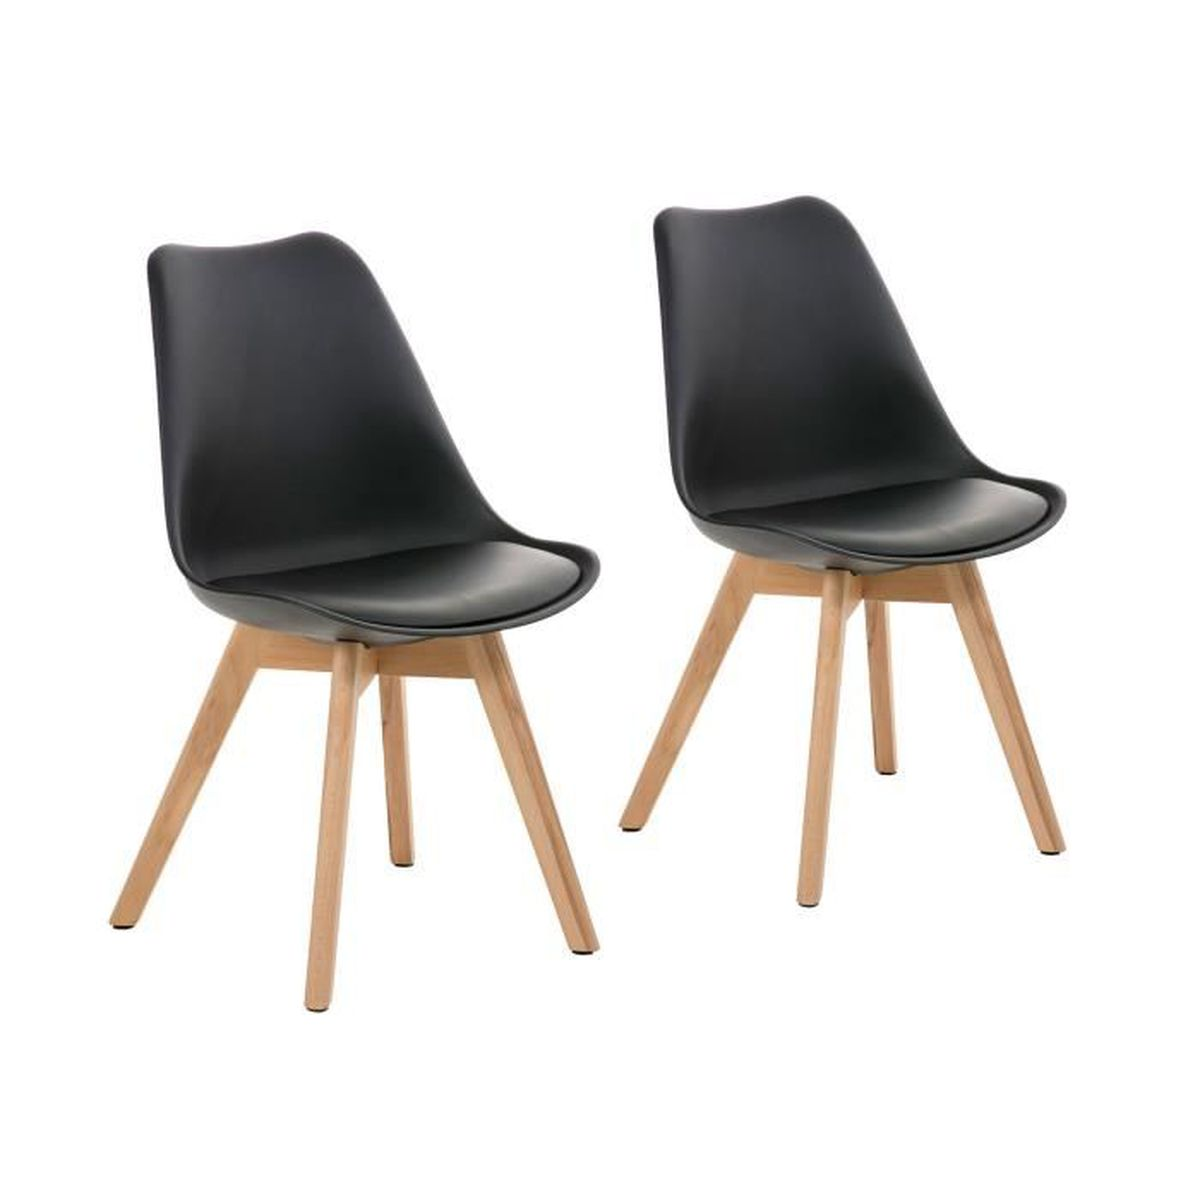 malm lot de 2 chaises design scandinave noir pu achat vente chaise cdiscount. Black Bedroom Furniture Sets. Home Design Ideas